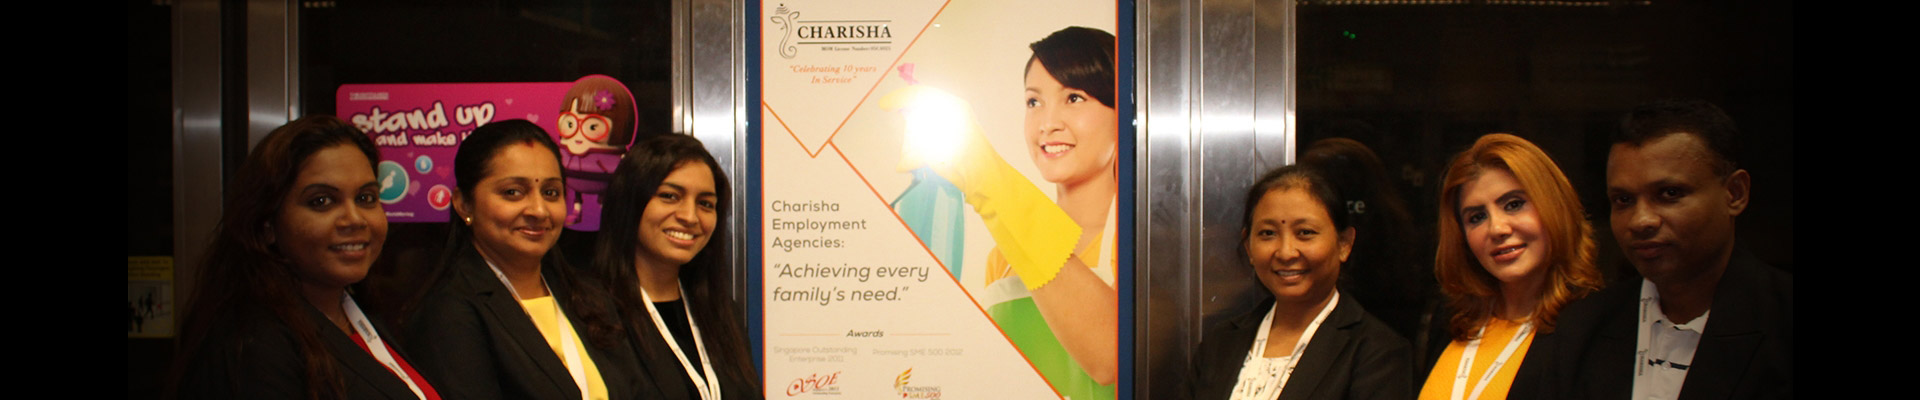 Charisha Featured In MRT Stations - About - Charisha